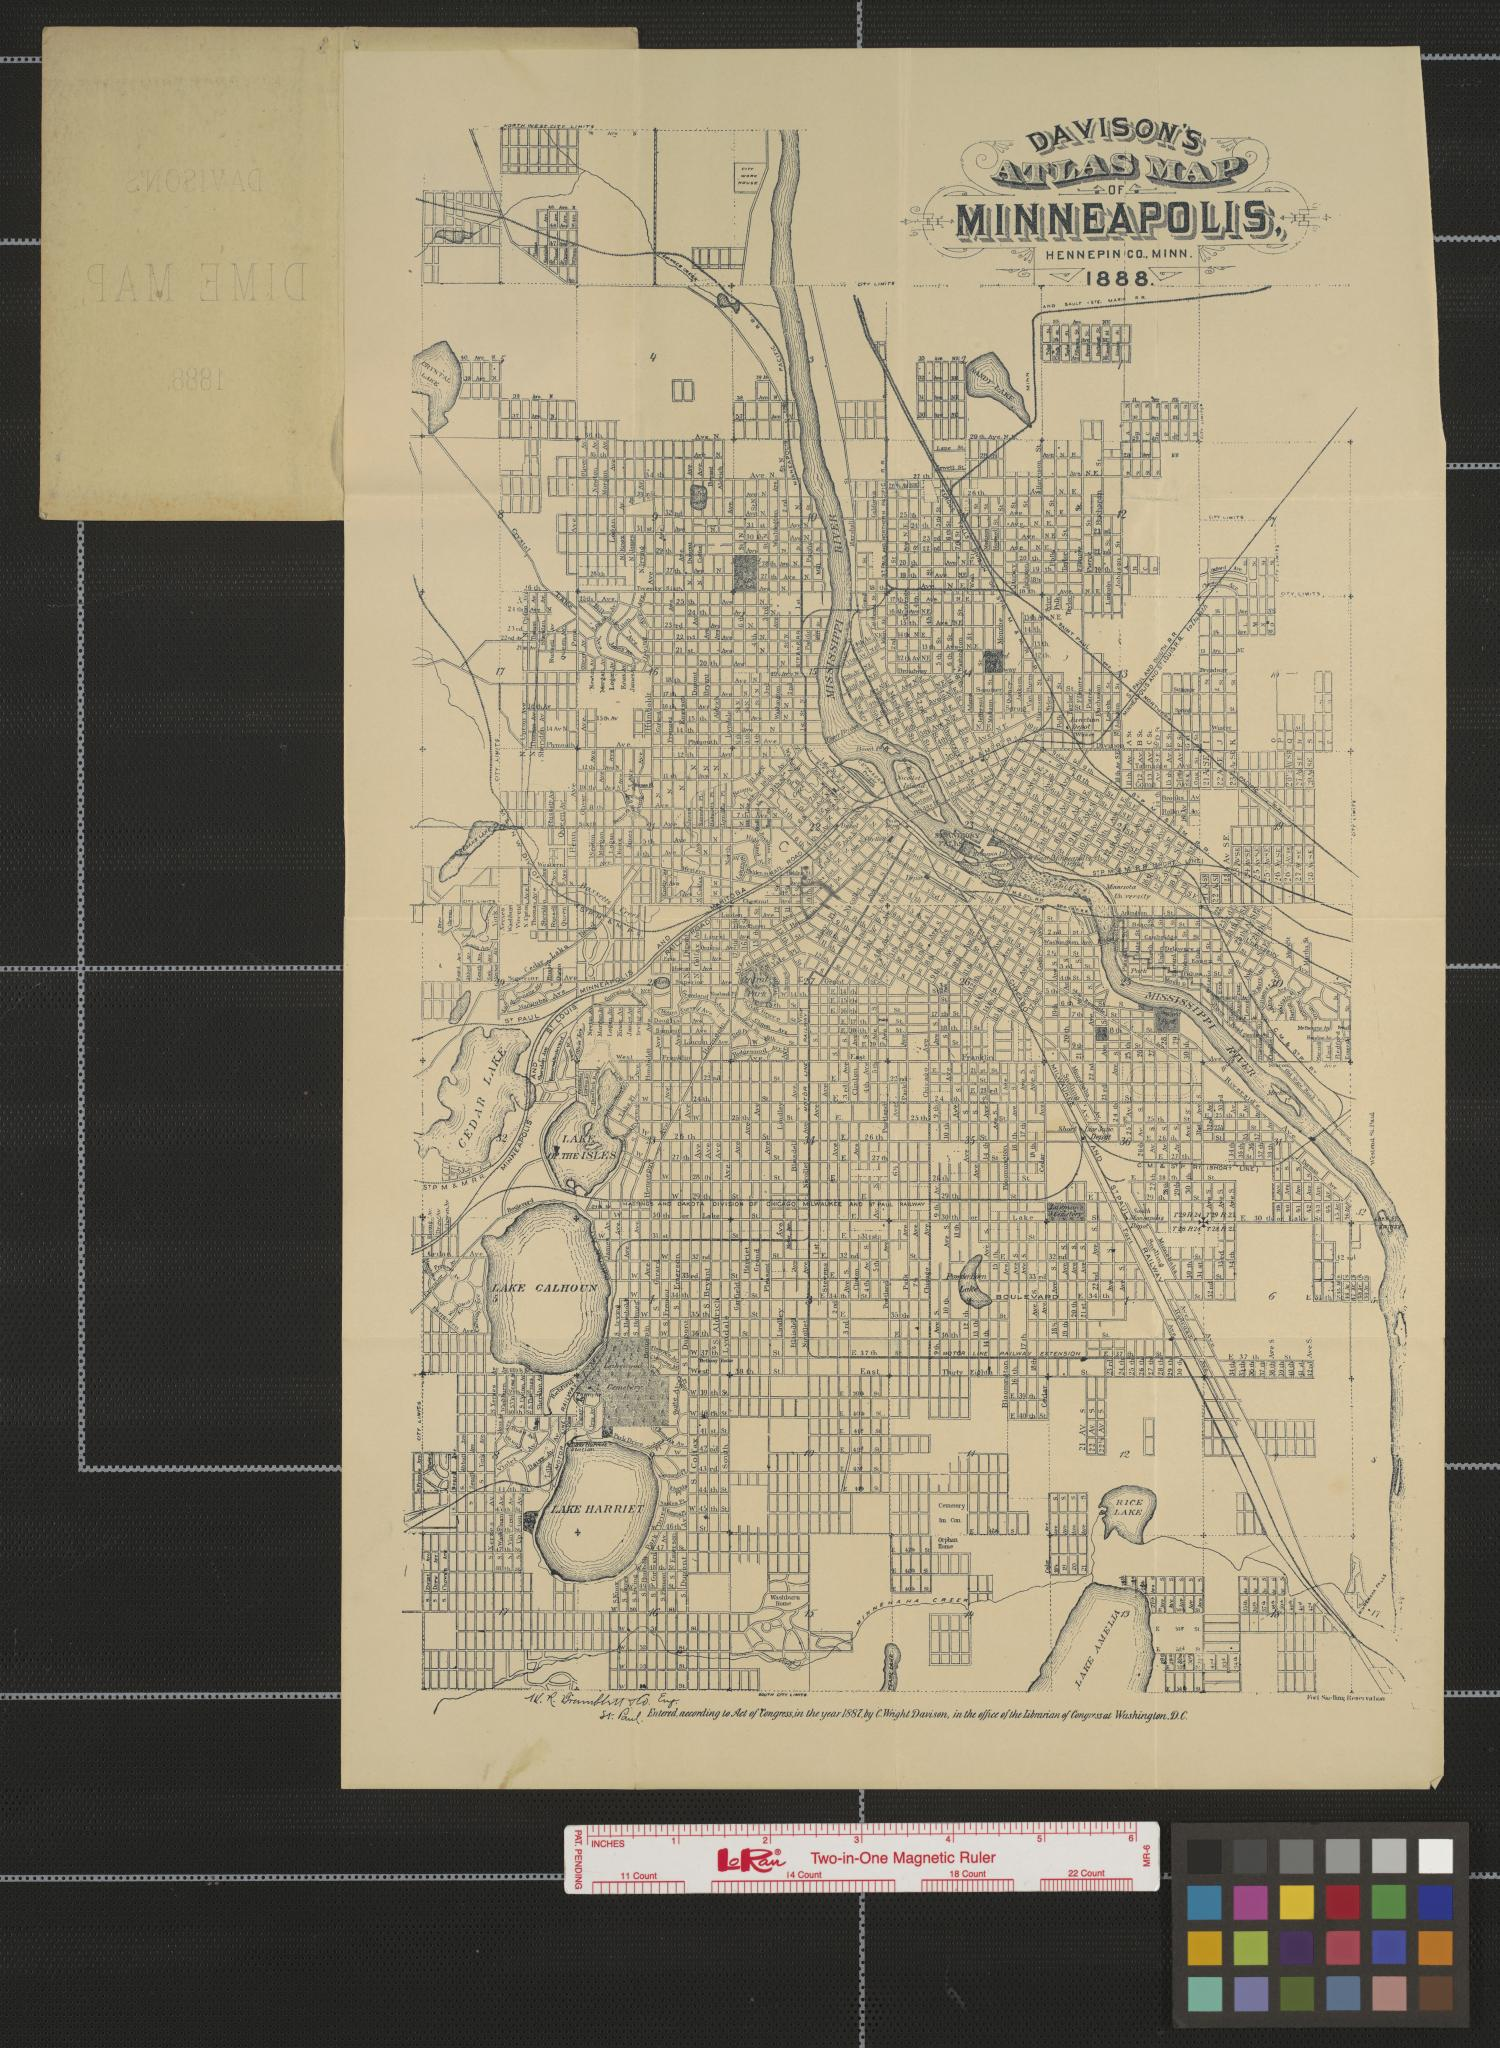 Davison's atlas map of Minneapolis, Hennepin Co., Minn., 1888.                                                                                                      [Sequence #]: 1 of 2